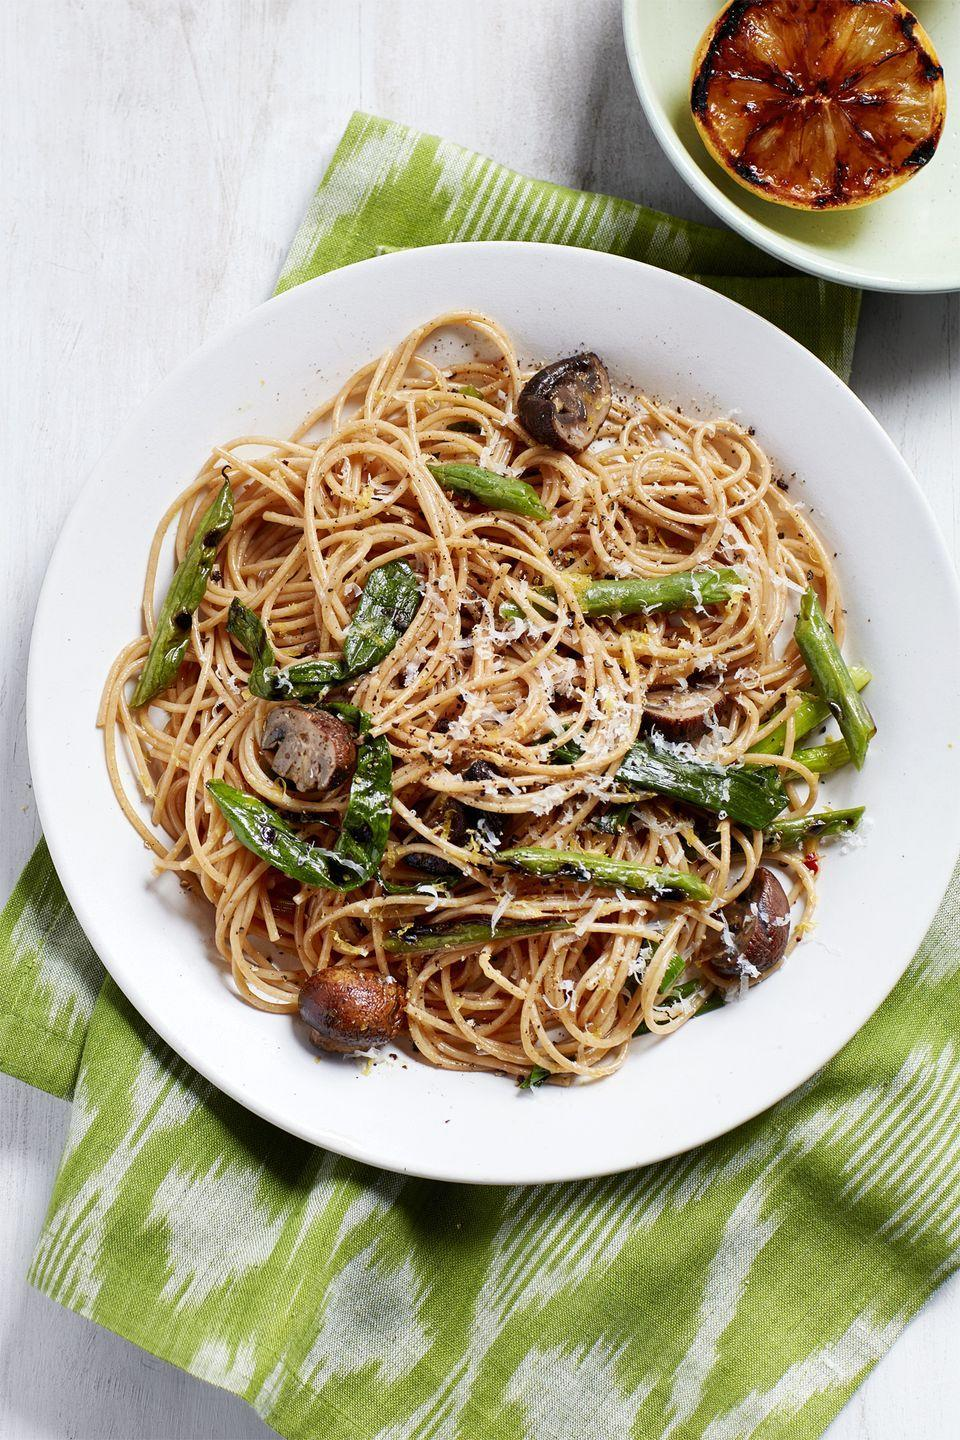 """<p>Heart-healthy whole-wheat pasta gets a dash of vitamin C thanks to yummy green beans.</p><p><em><a href=""""https://www.womansday.com/food-recipes/food-drinks/recipes/a58984/spaghetti-grilled-green-beans-mushrooms/"""" rel=""""nofollow noopener"""" target=""""_blank"""" data-ylk=""""slk:Get the Spaghetti with Grilled Green Beans and Mushrooms recipe."""" class=""""link rapid-noclick-resp"""">Get the Spaghetti with Grilled Green Beans and Mushrooms recipe.</a> </em></p><p><strong>What You'll Need</strong>: <a href=""""https://www.amazon.com/OXO-Grips-Soft-Handled-Garlic-Press/dp/B00HEZ888K/"""" rel=""""nofollow noopener"""" target=""""_blank"""" data-ylk=""""slk:Garlic press"""" class=""""link rapid-noclick-resp"""">Garlic press</a> ($17, Amazon)</p>"""